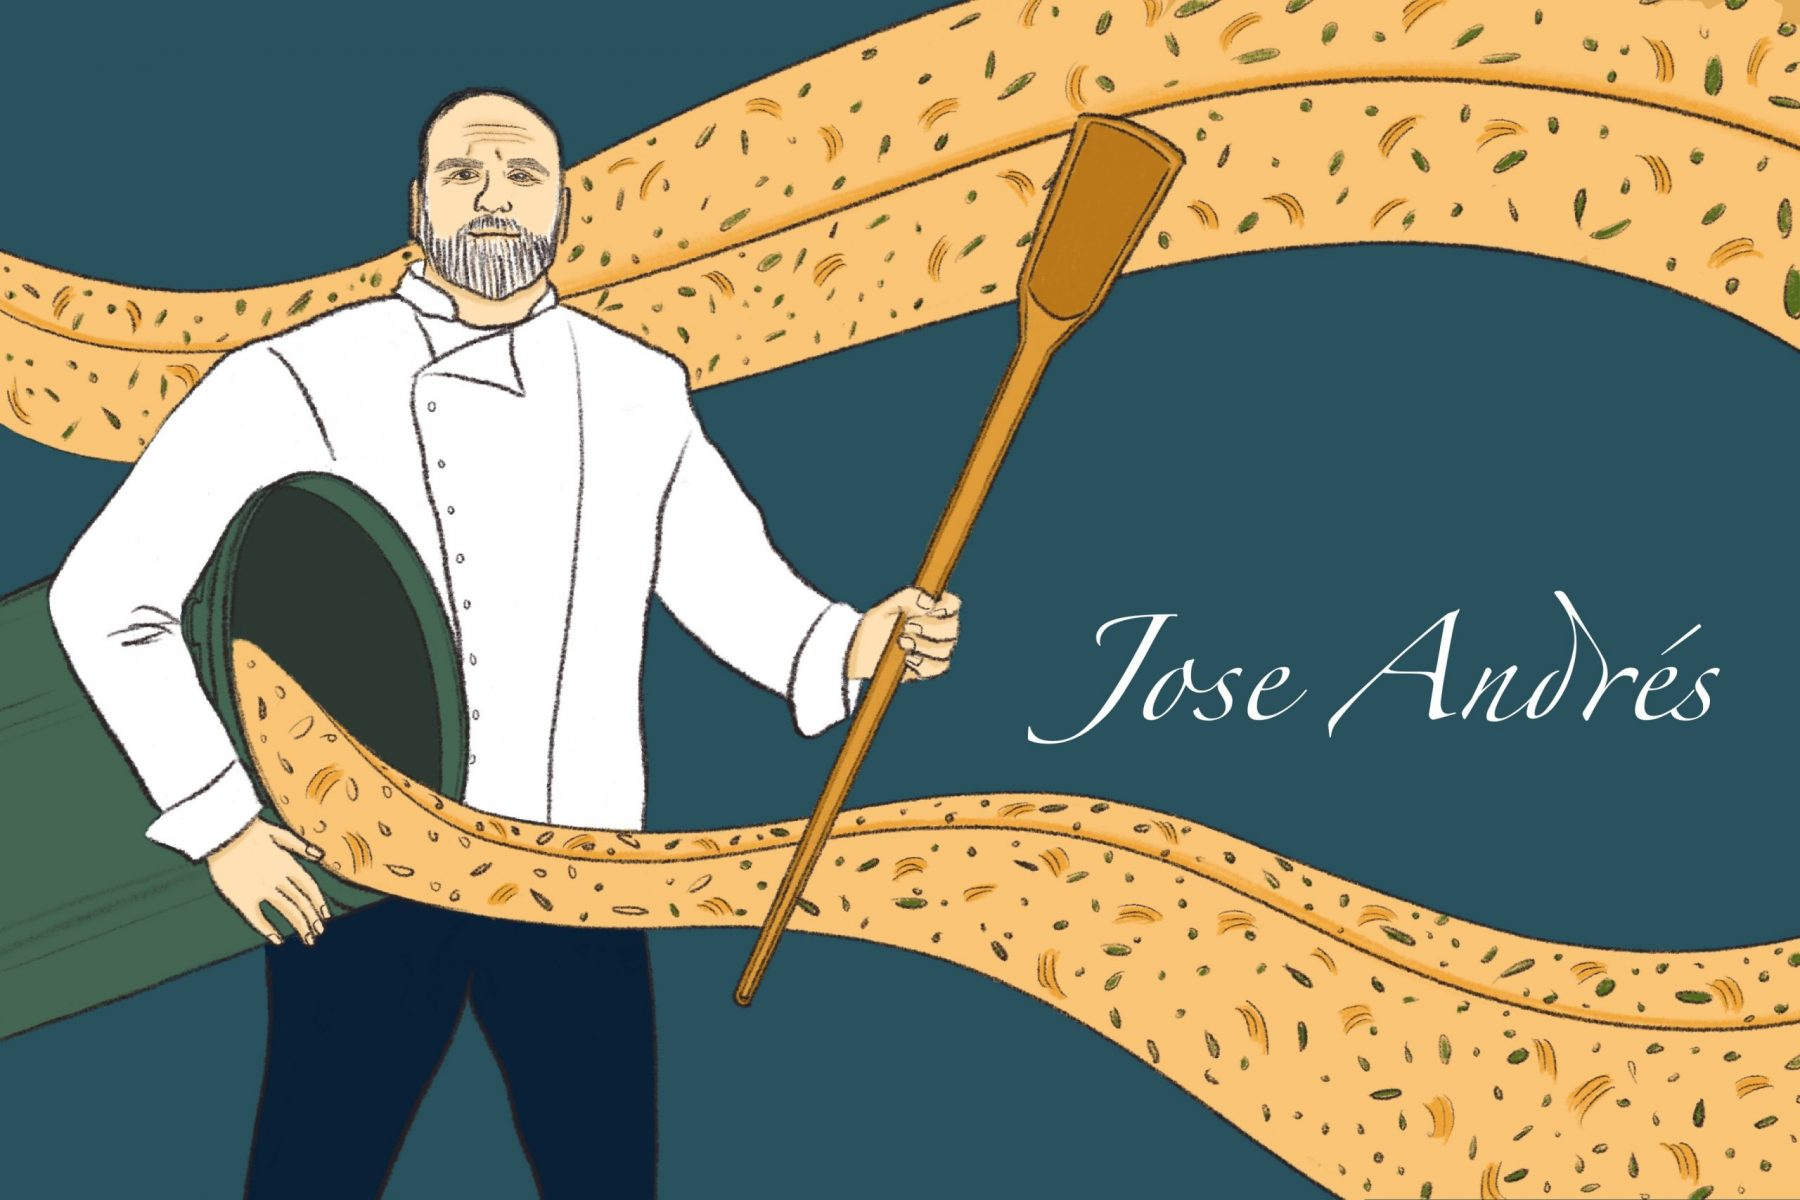 An illustration of Jose Andrés holding a cooking instrument